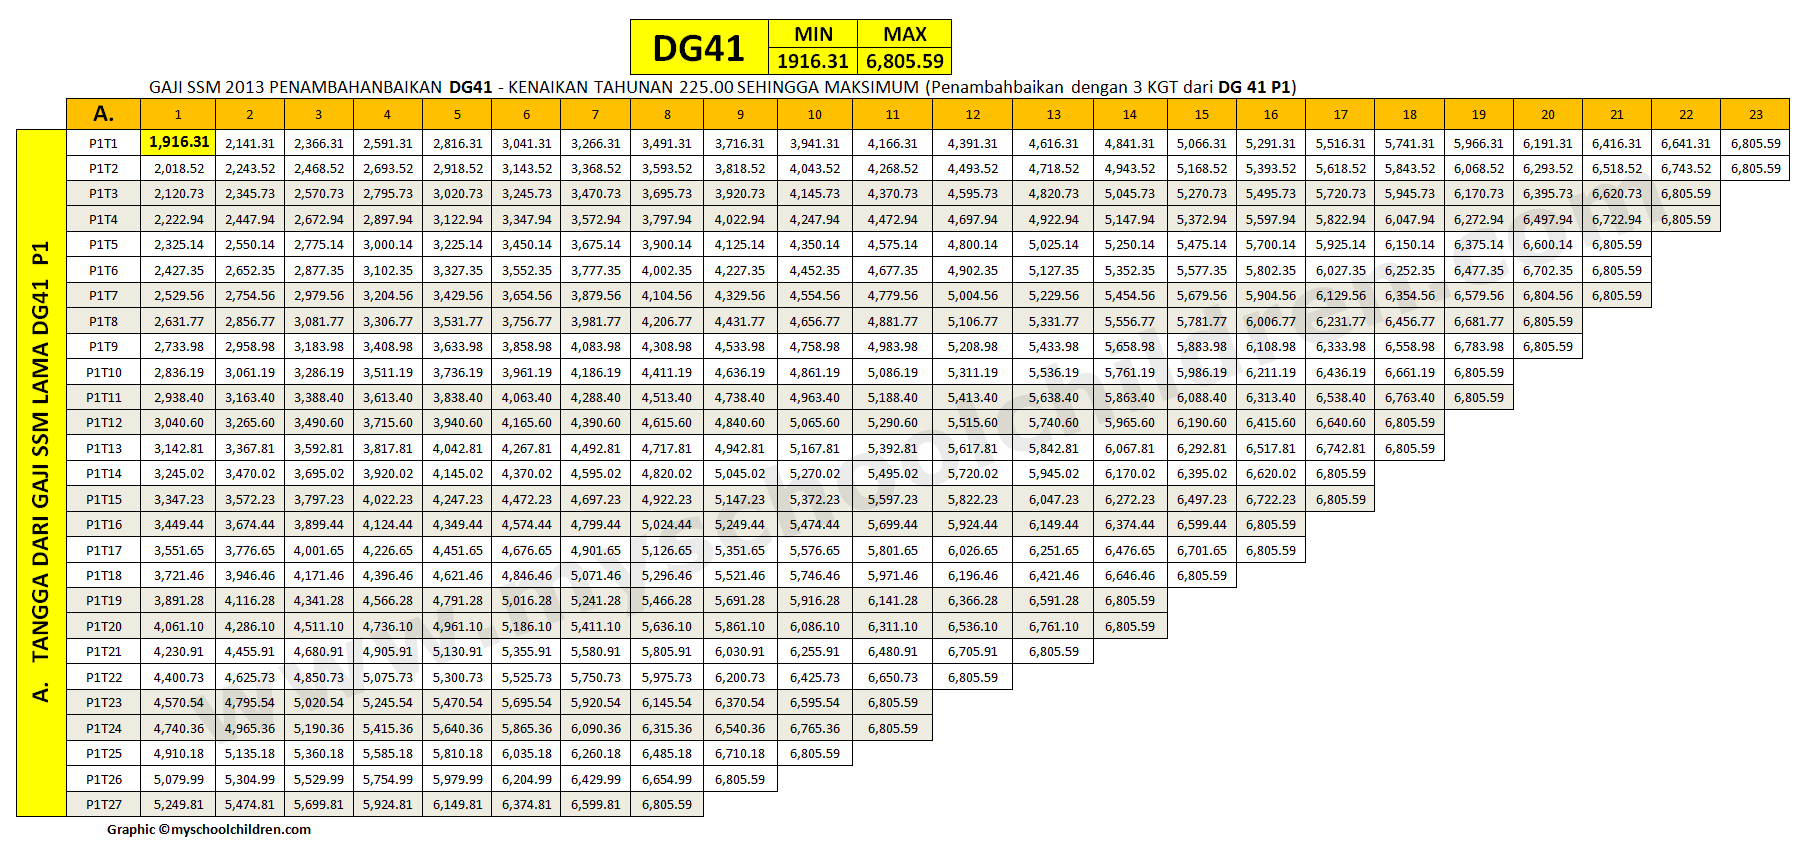 New SSM Minimum and Maximum Salary Scale for DG41-54)